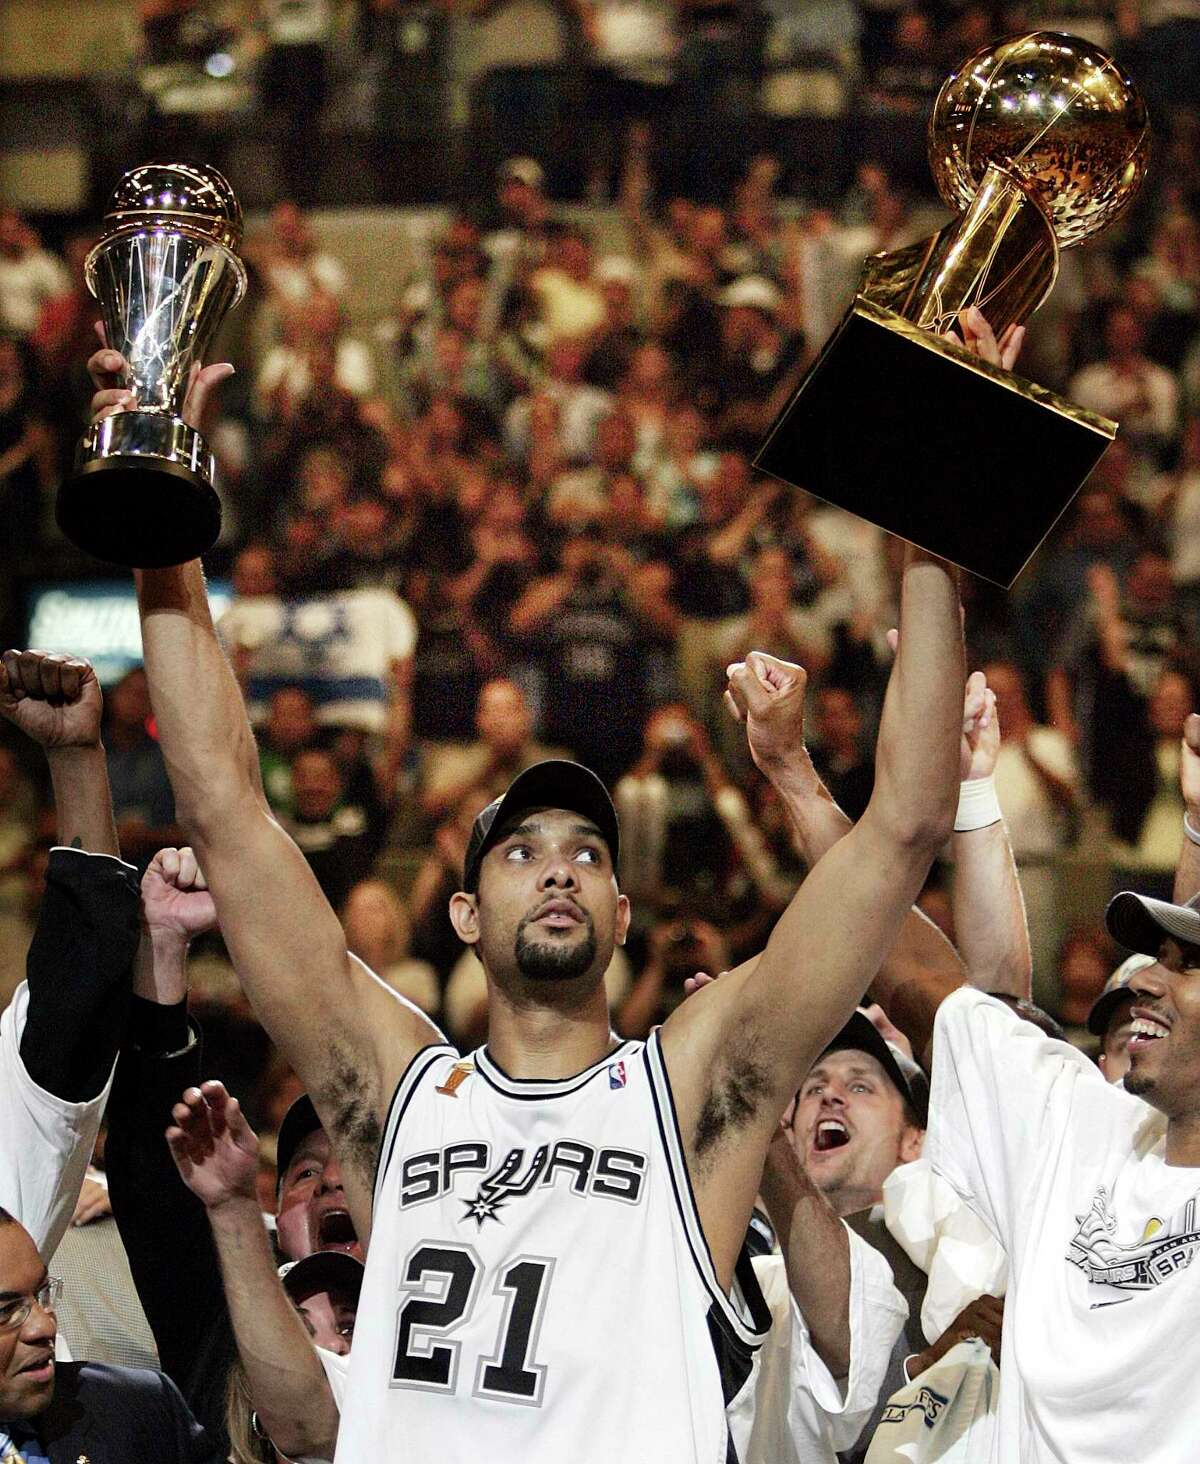 Spurs great Tim Duncan celebrates the 2005 championship and MVP. Duncan filled up the stat sheet, but he led with the heart of a champion.